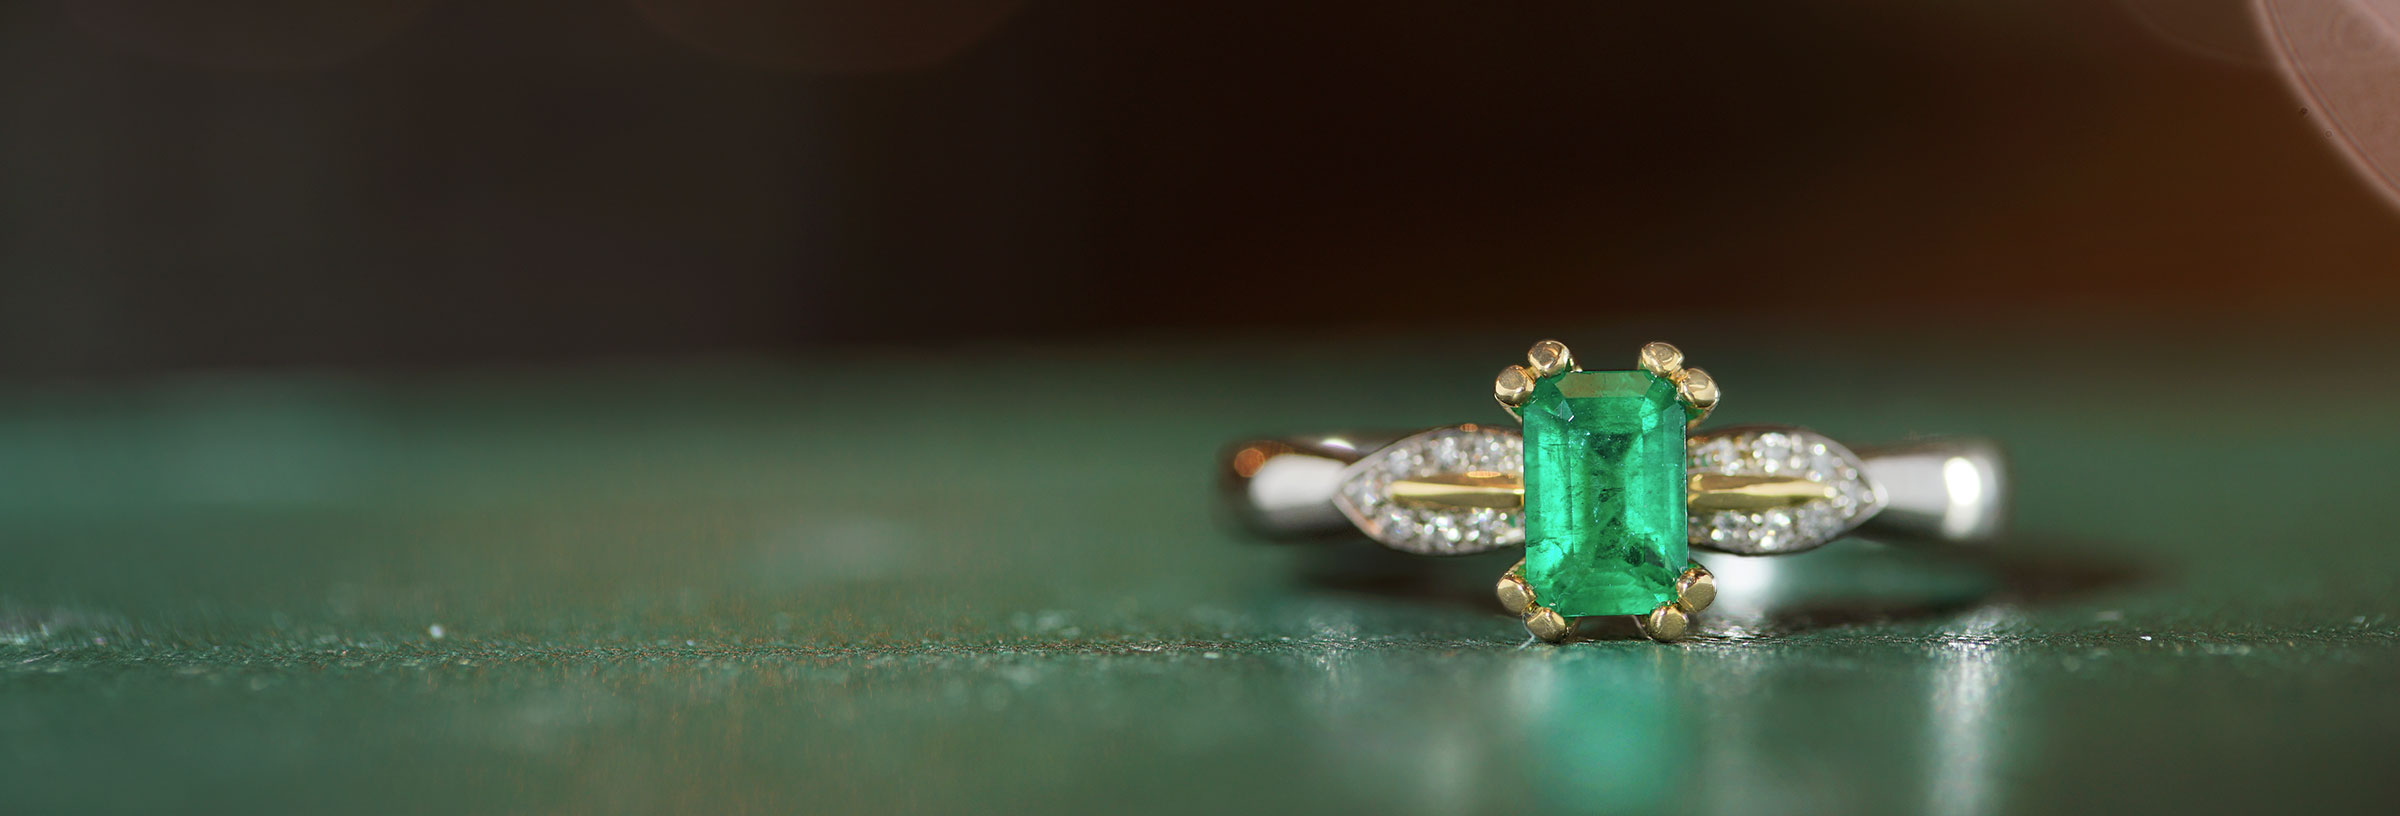 palladium-18-carat-yellow-gold-emerald-and-diamond-vintage-ring